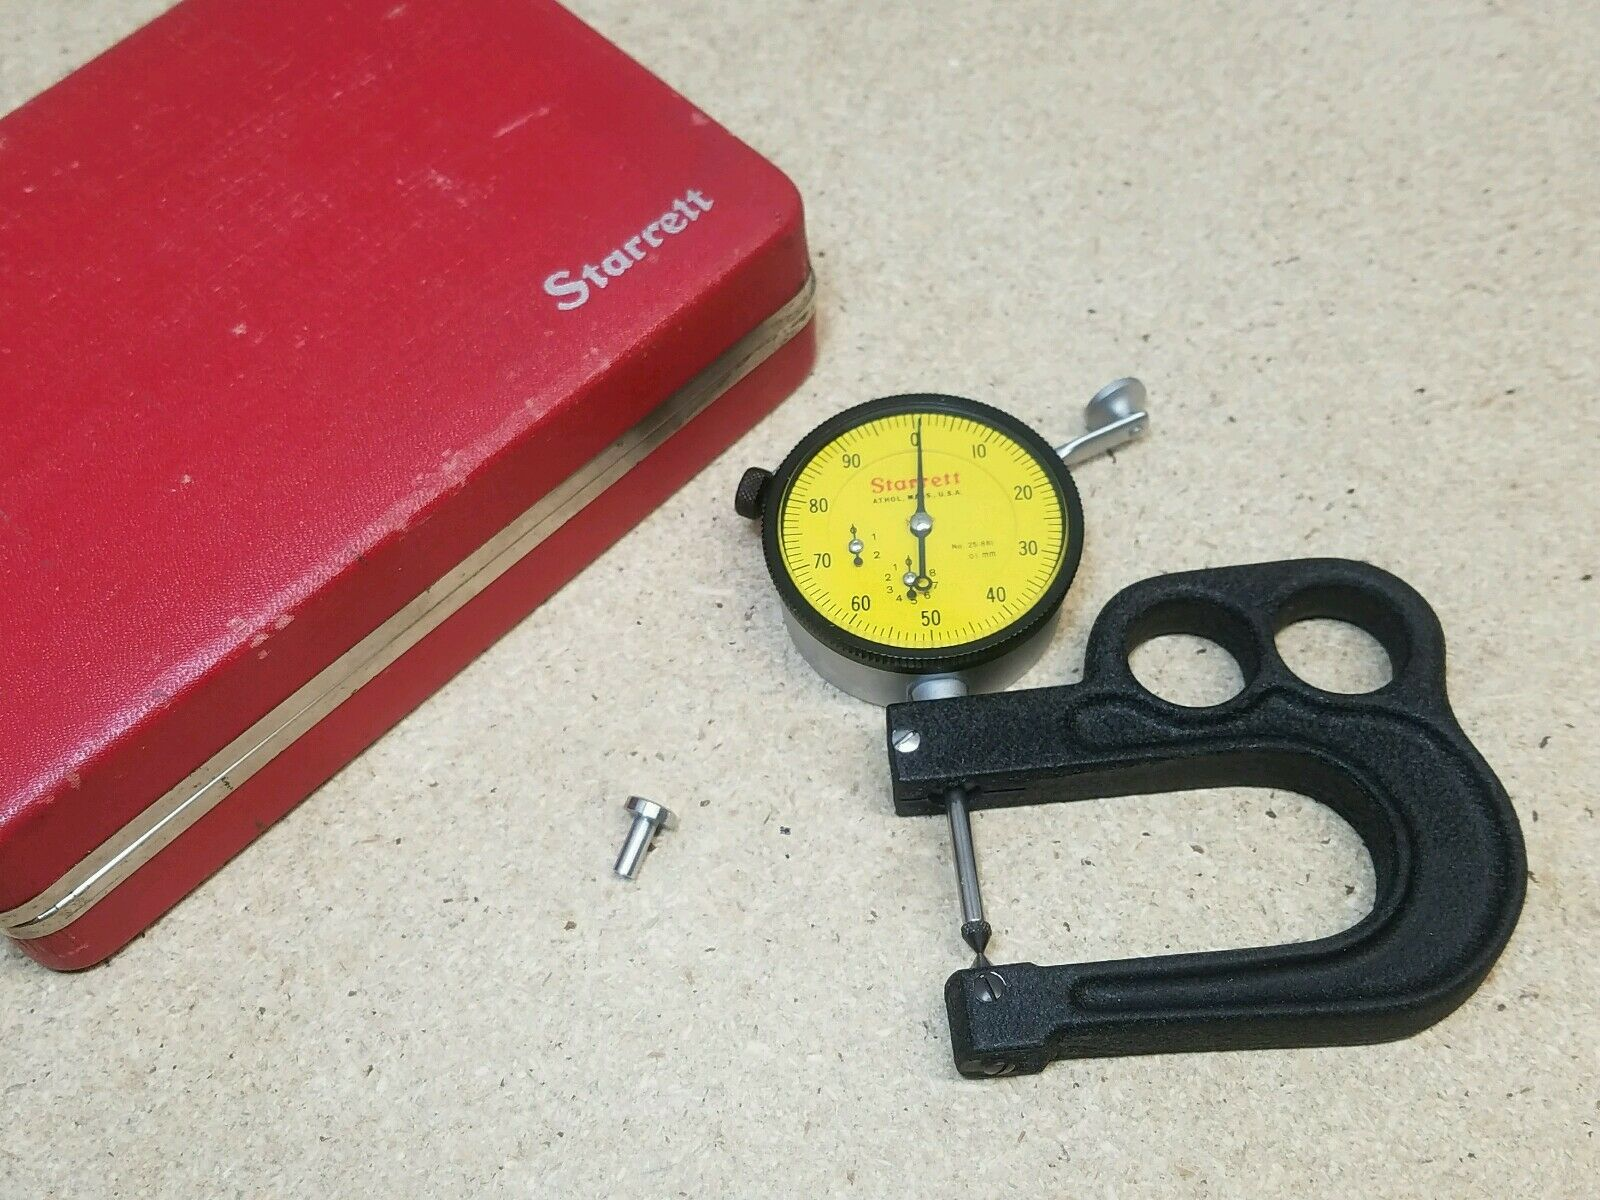 Starrett No 25-881 25mm .01 Mm Dial Indicator for sale online